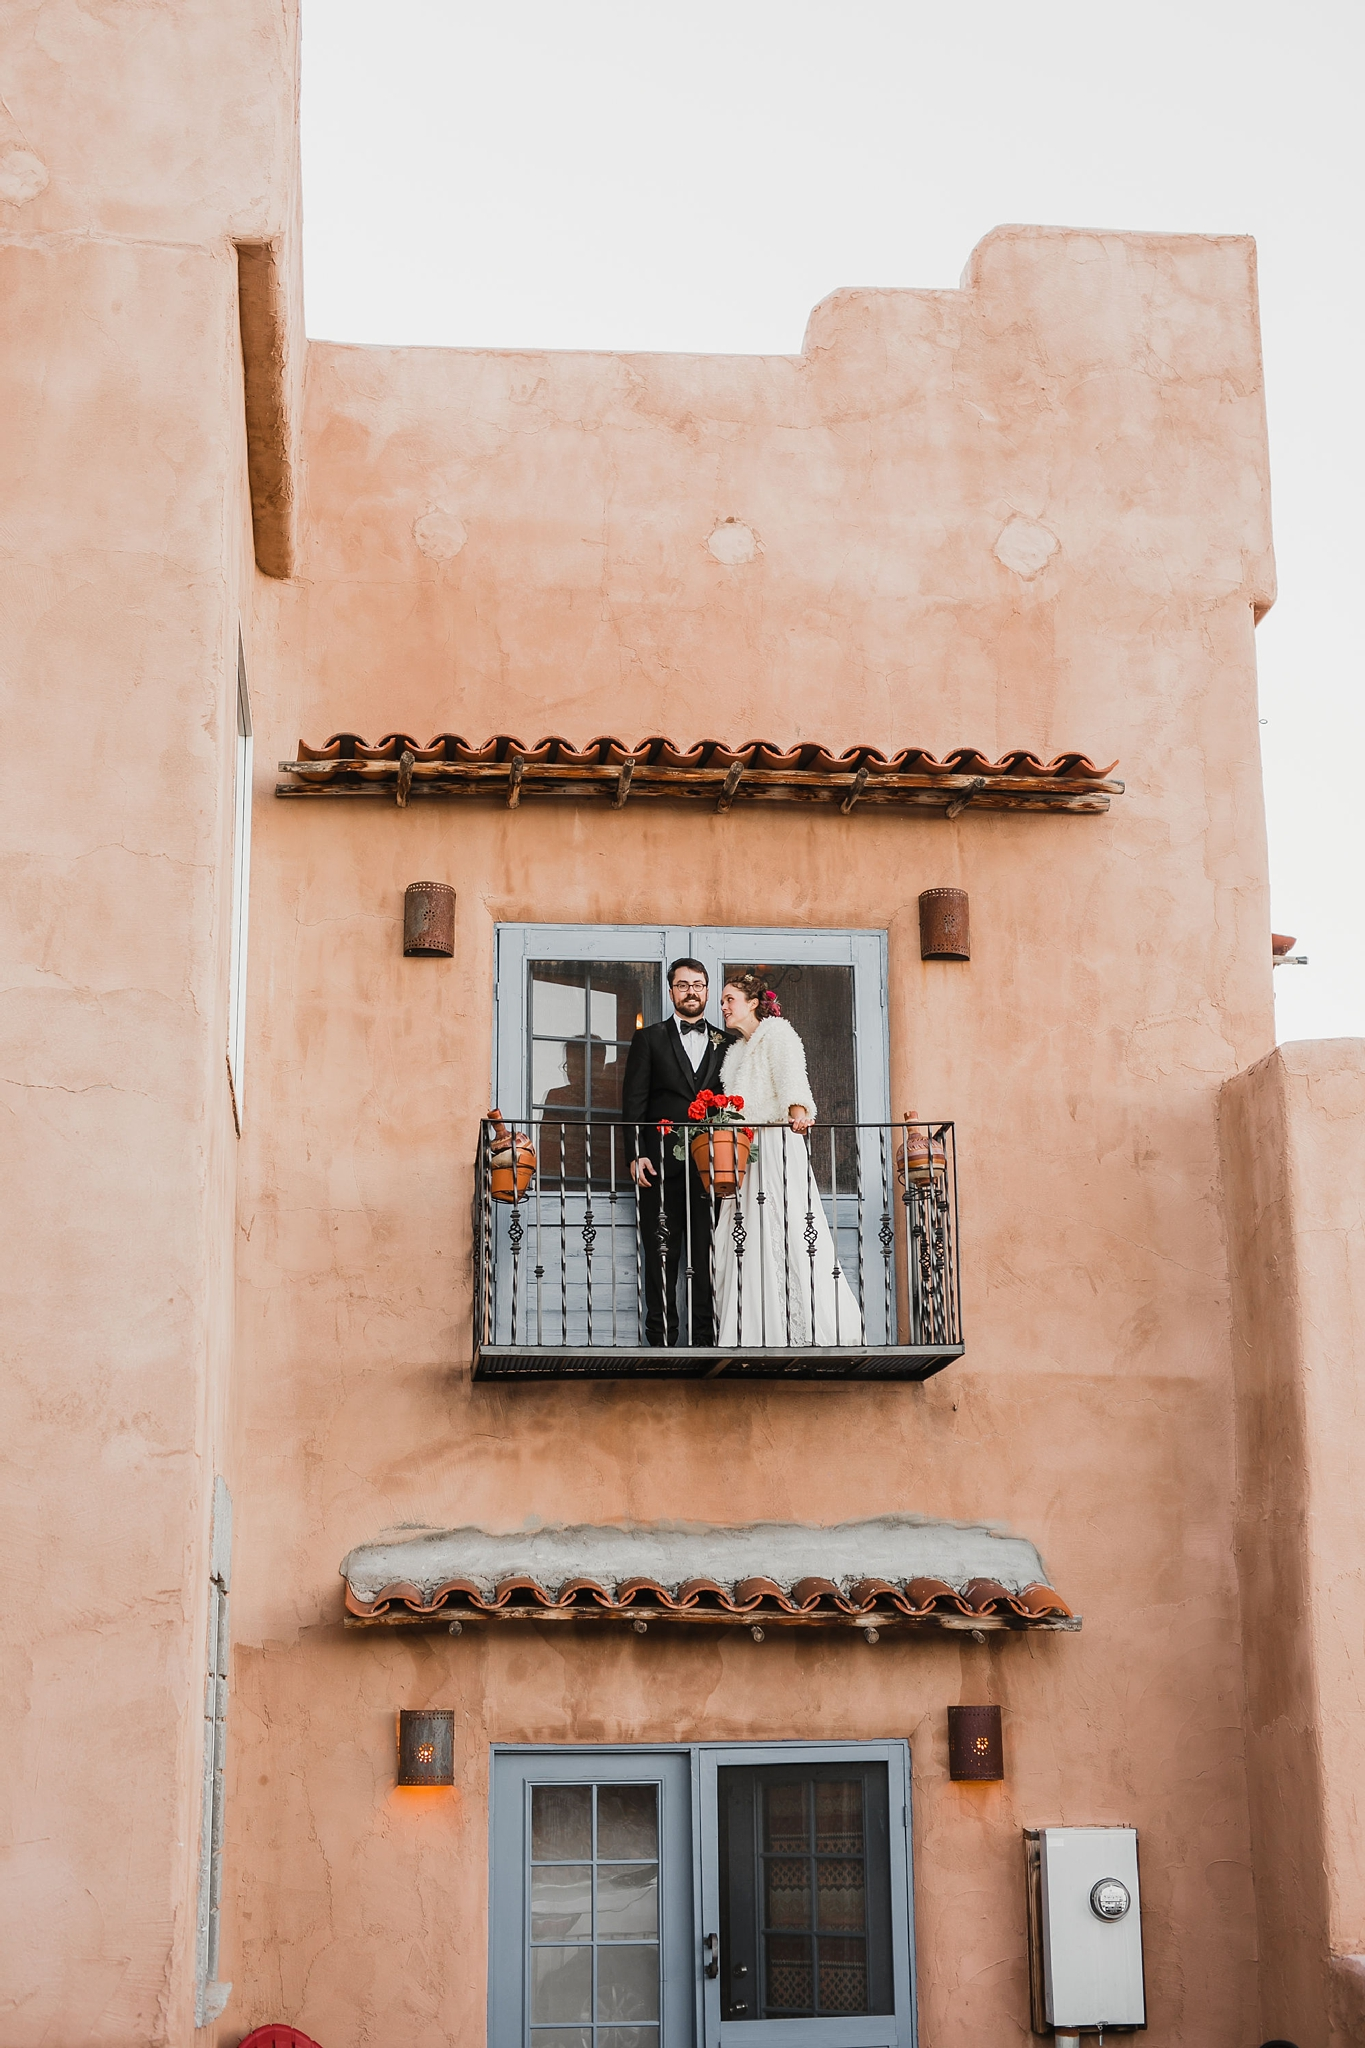 Alicia+lucia+photography+-+albuquerque+wedding+photographer+-+santa+fe+wedding+photography+-+new+mexico+wedding+photographer+-+new+mexico+wedding+-+engagement+-+santa+fe+wedding+-+hacienda+dona+andrea+-+hacienda+dona+andrea+wedding_0085.jpg